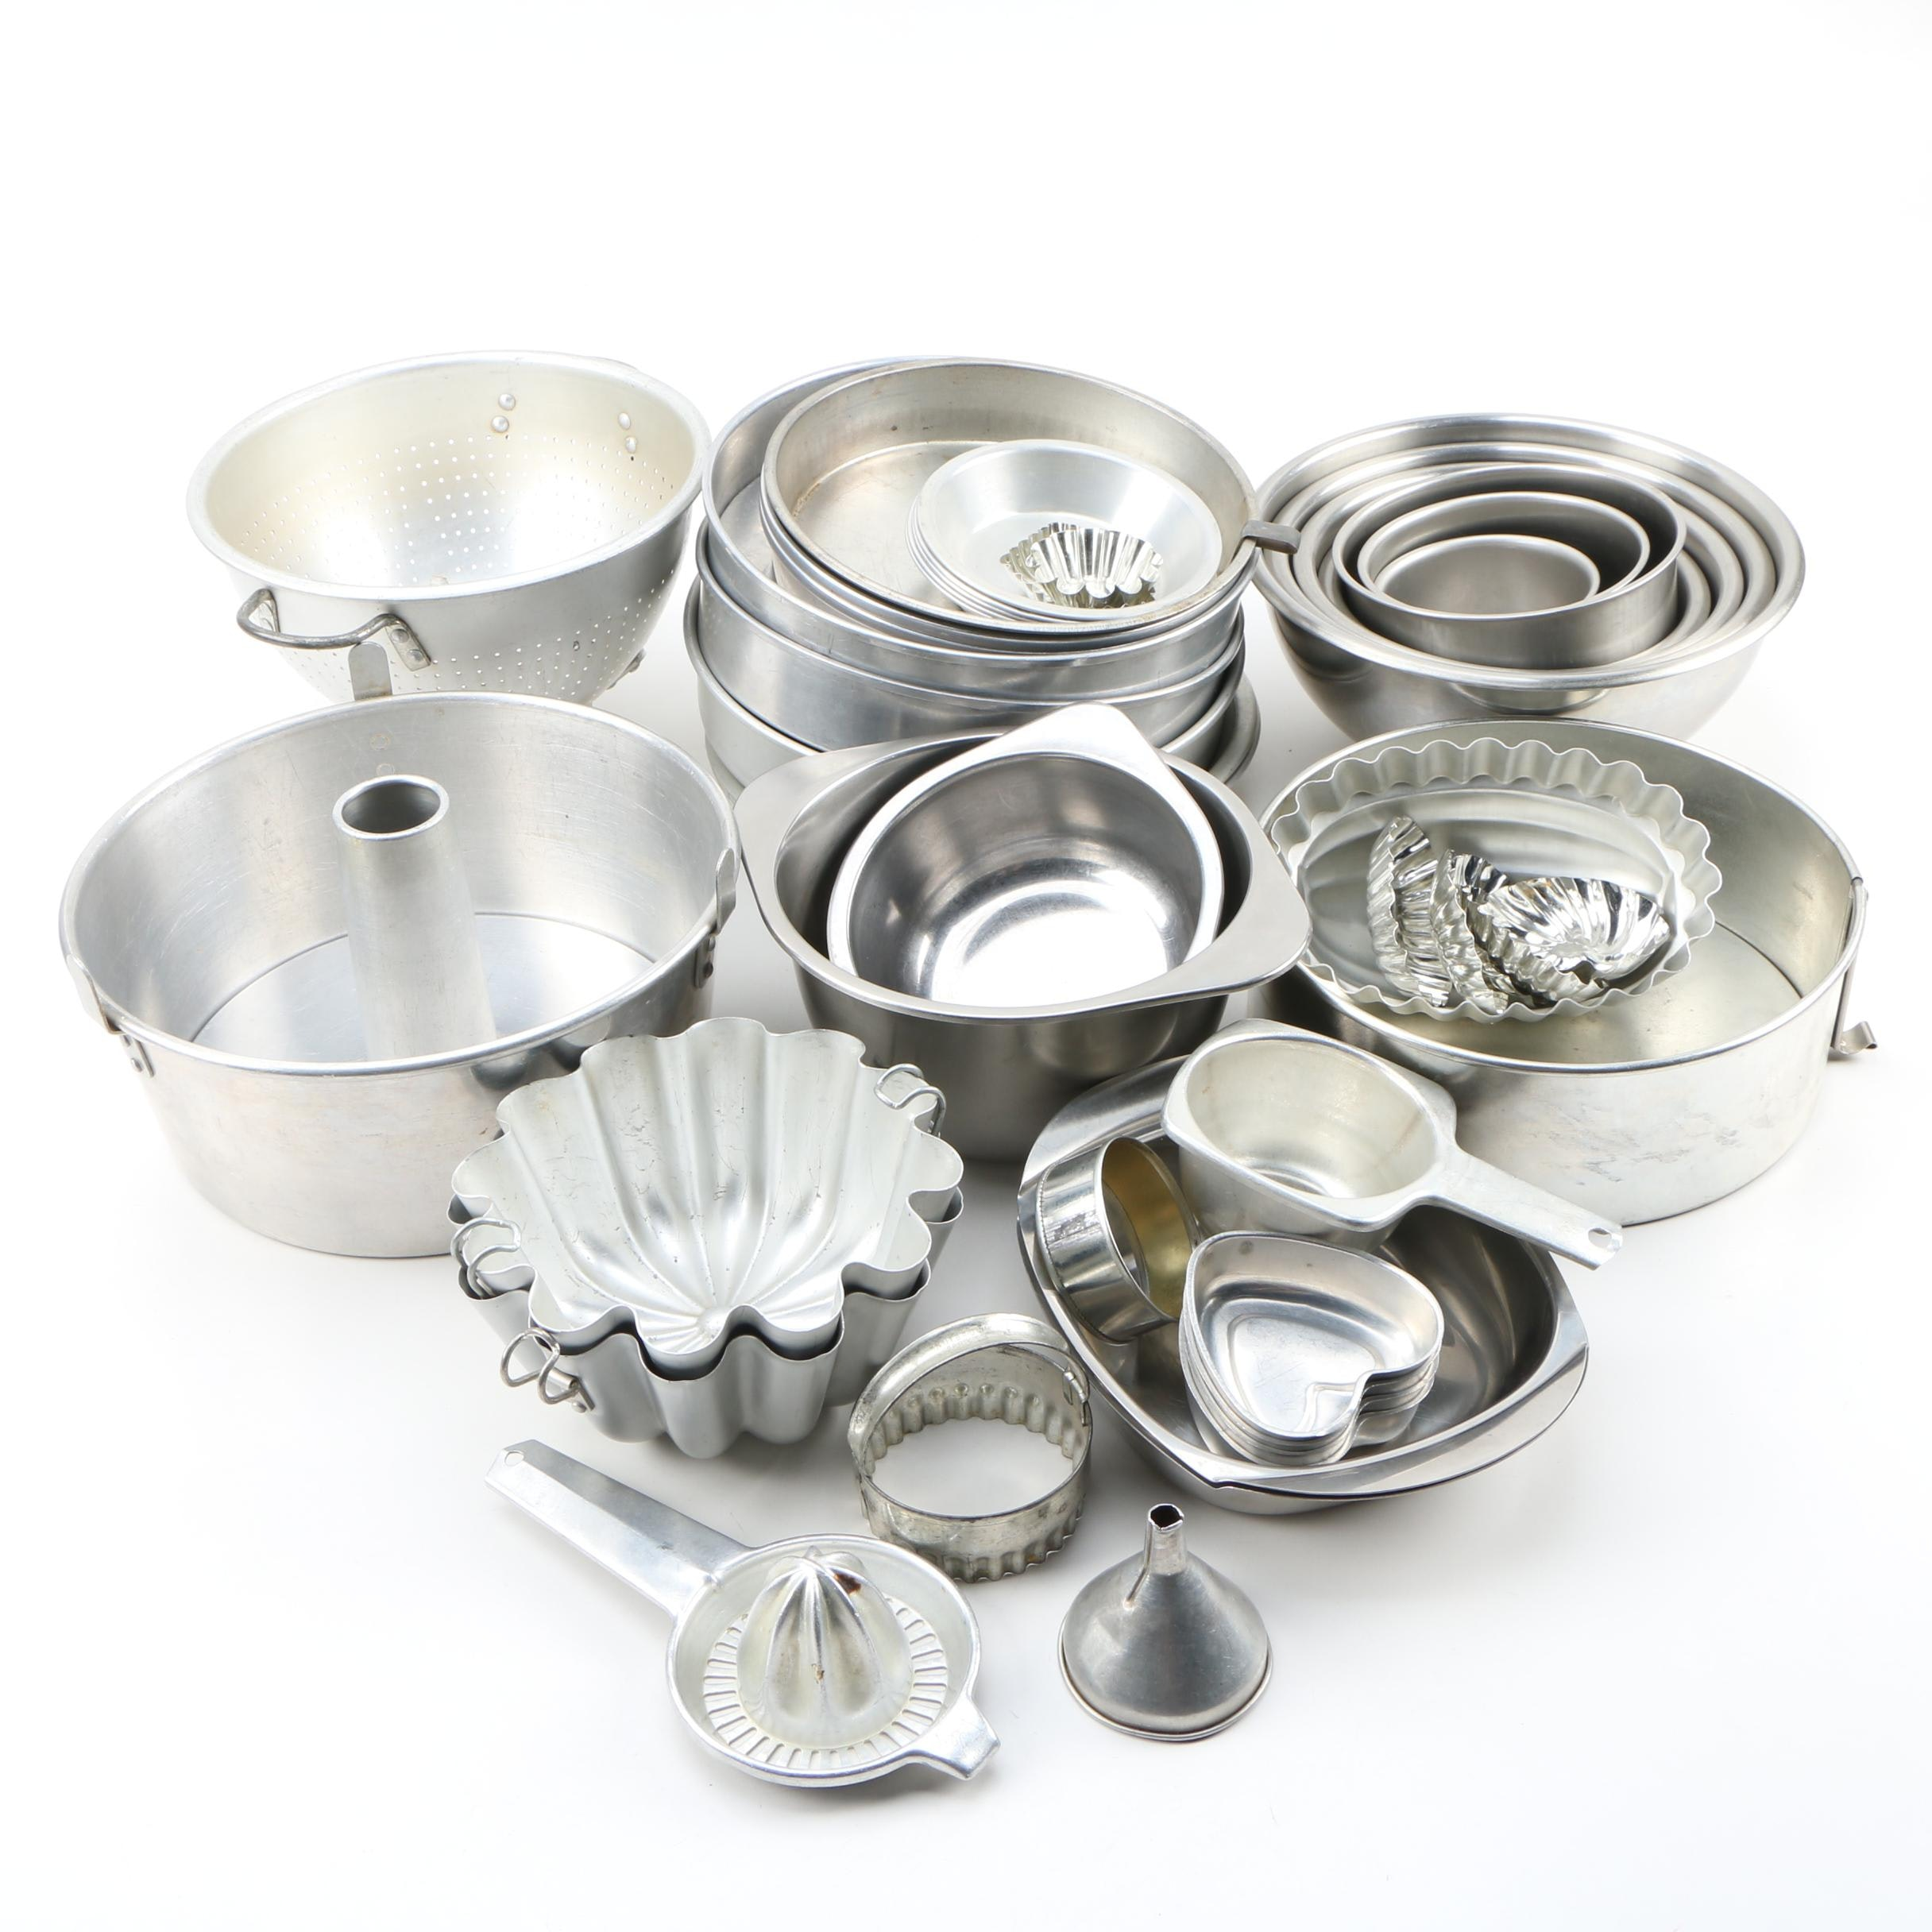 Stainless Steel and Aluminum Bakeware and More